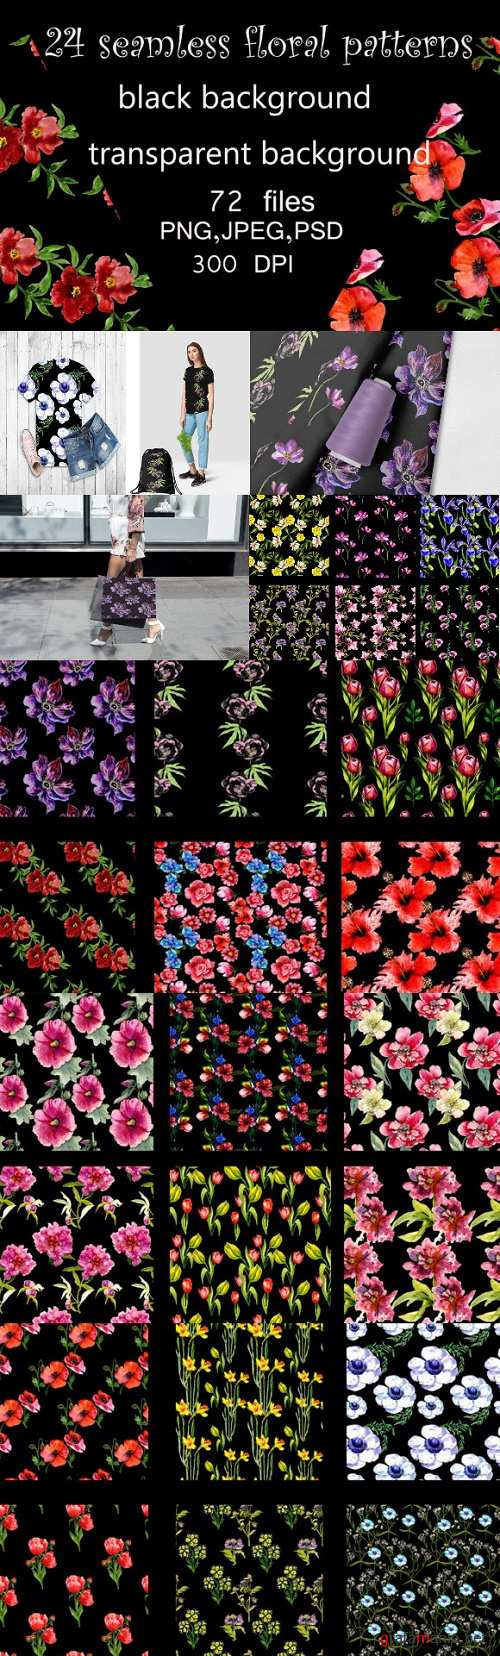 Bundle Seamless Floral Patterns - 1667056